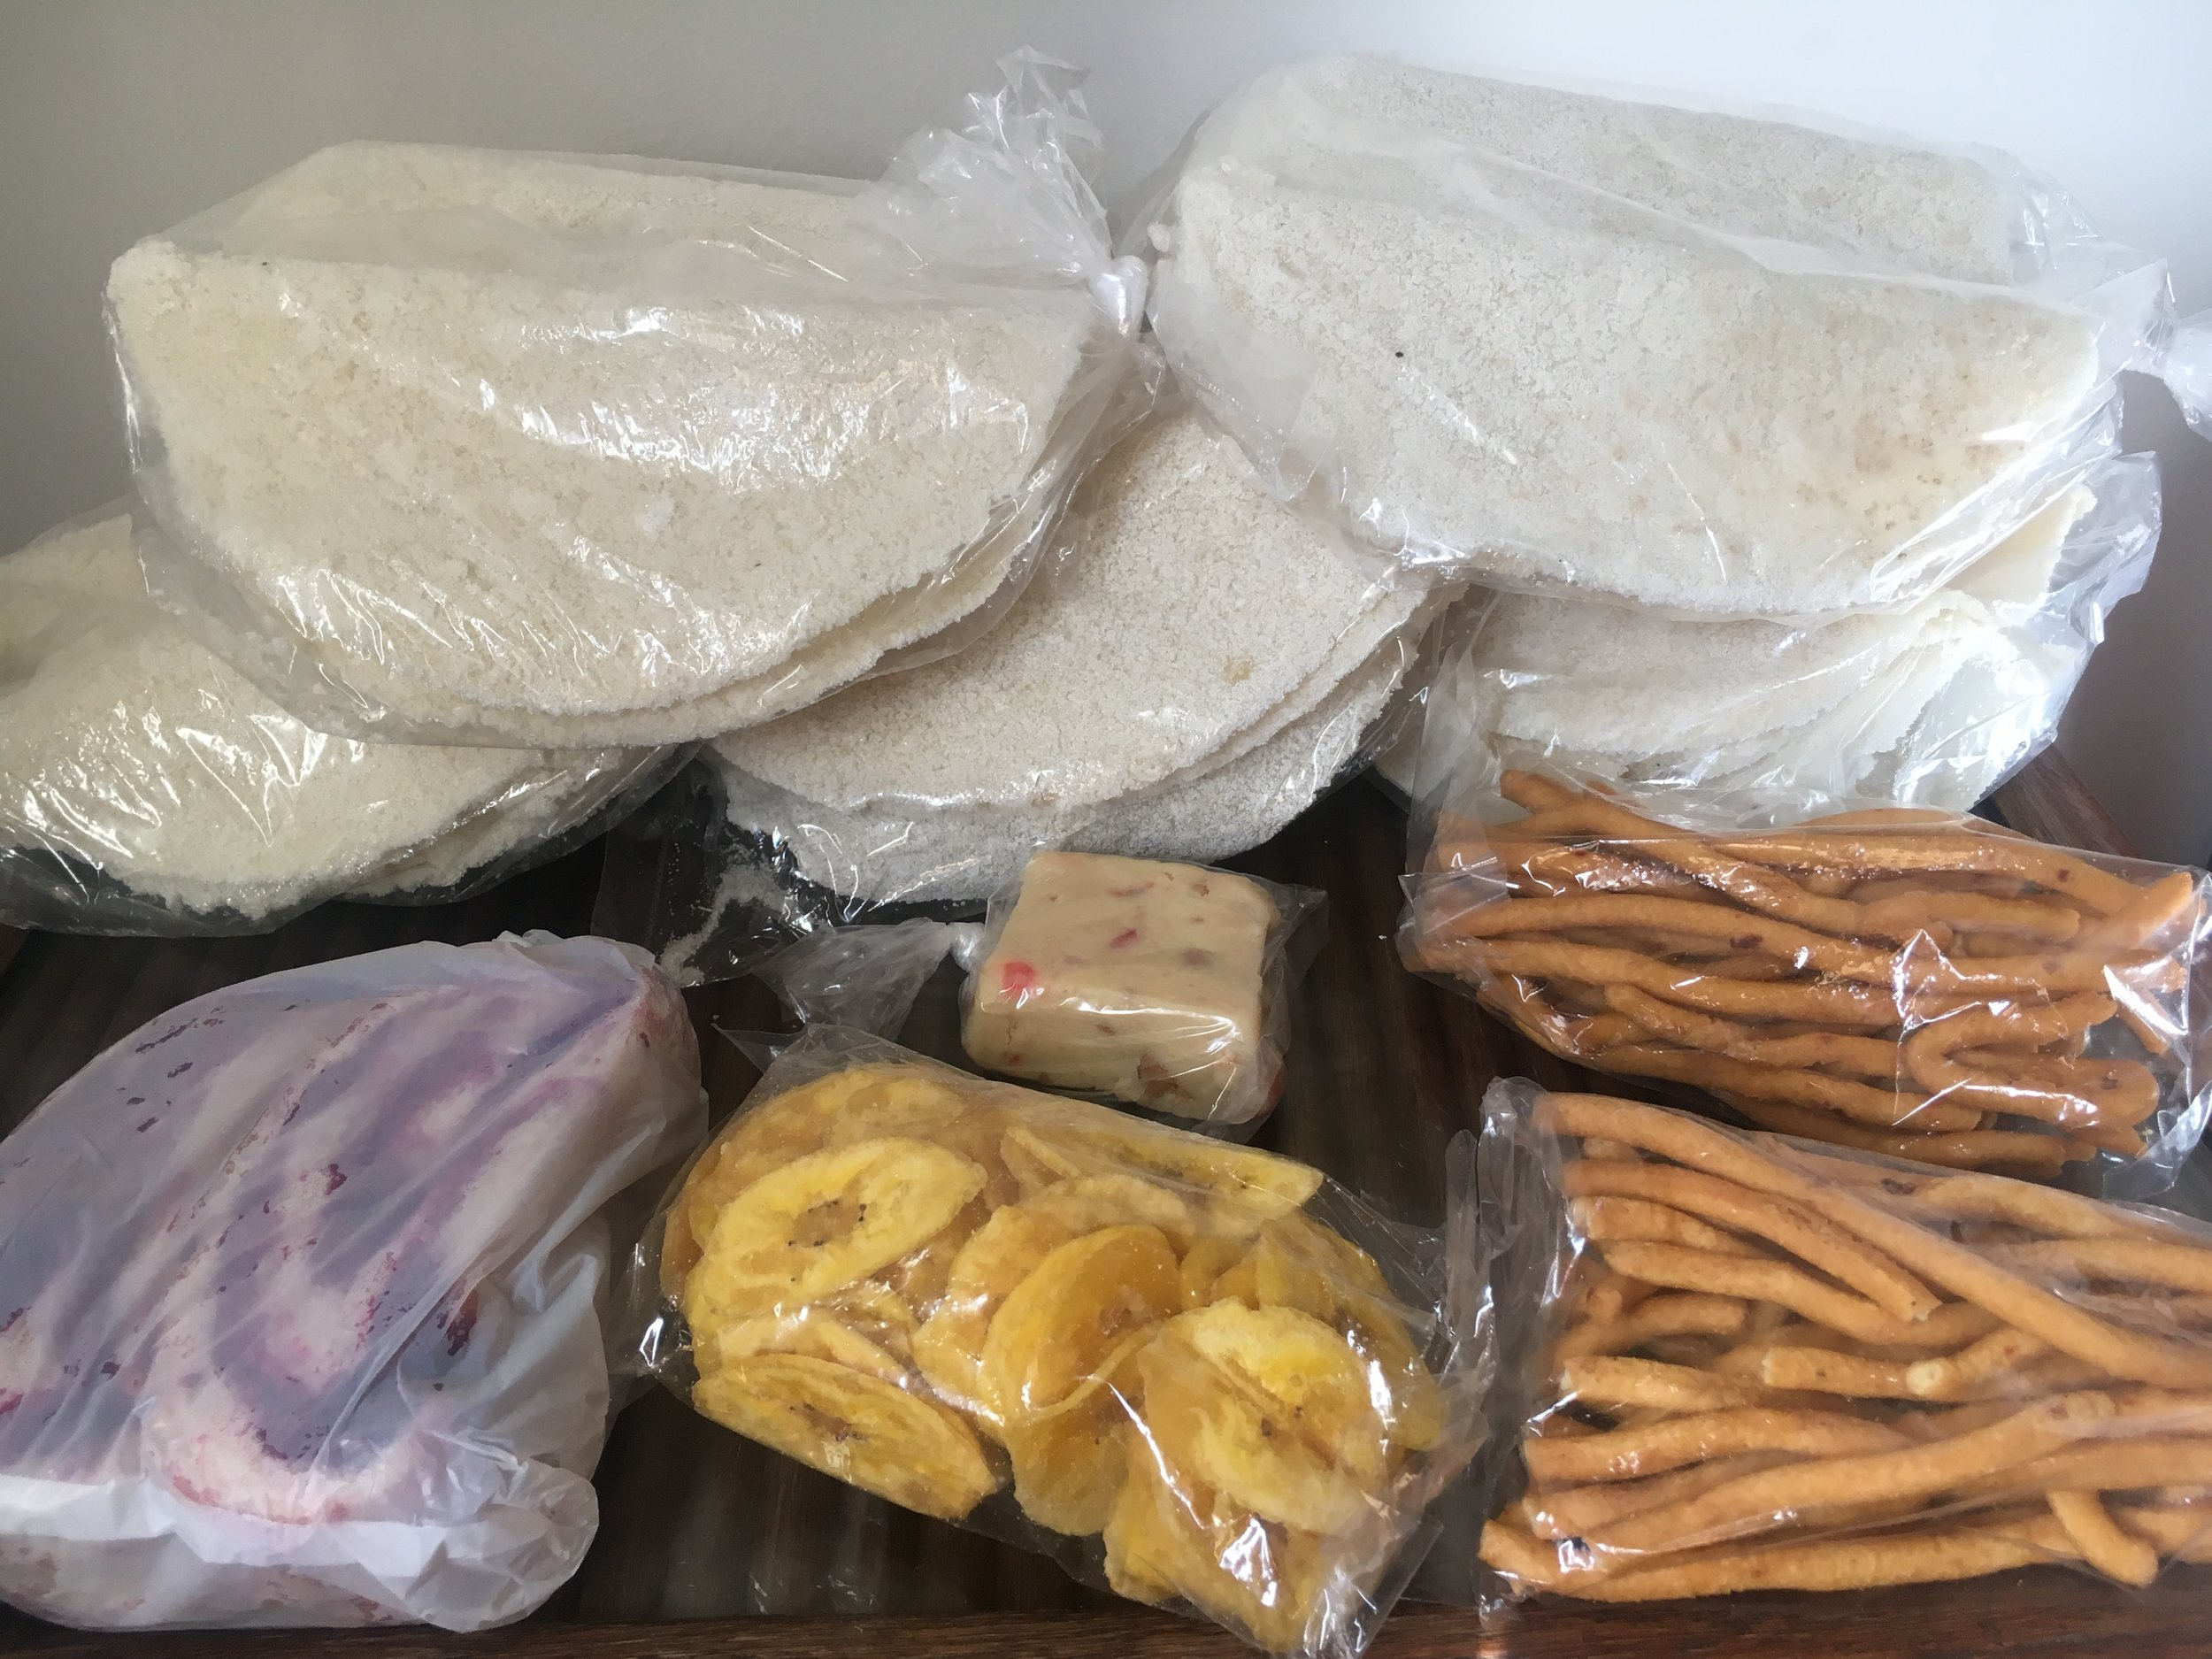 """I couldn't resist picking up a few local treats like cassava bread, salara (sweet bread with red-dyed coconut), plantain chips, fudge, and """"chicken foot"""" (thin cracker-like snack) from  Starbroek Market"""